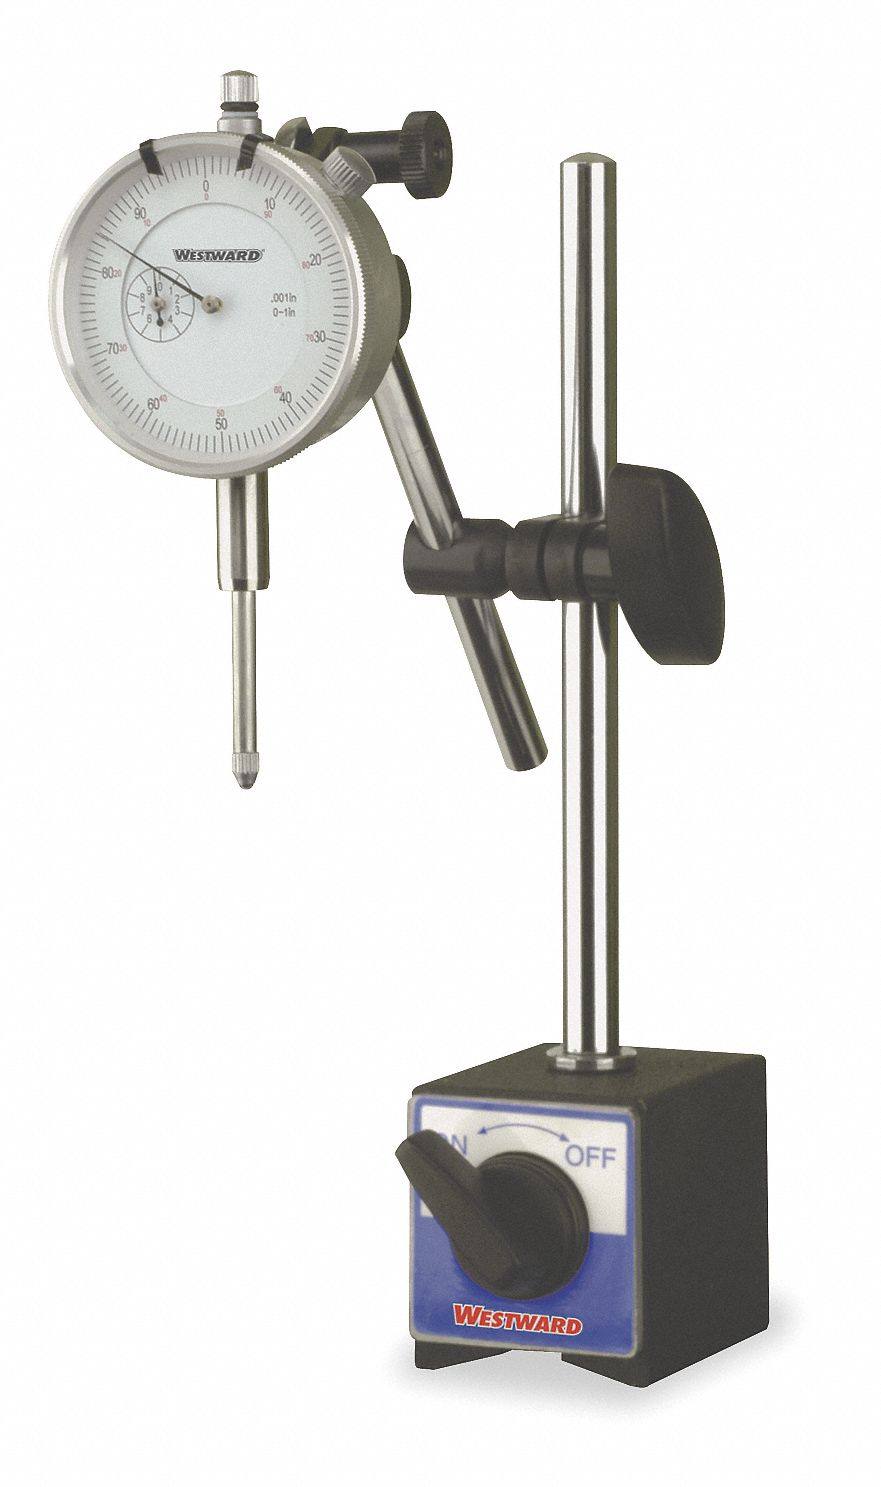 Continuous Reading Dial Indicator & Mag Base Set, 0 to 1 in Range